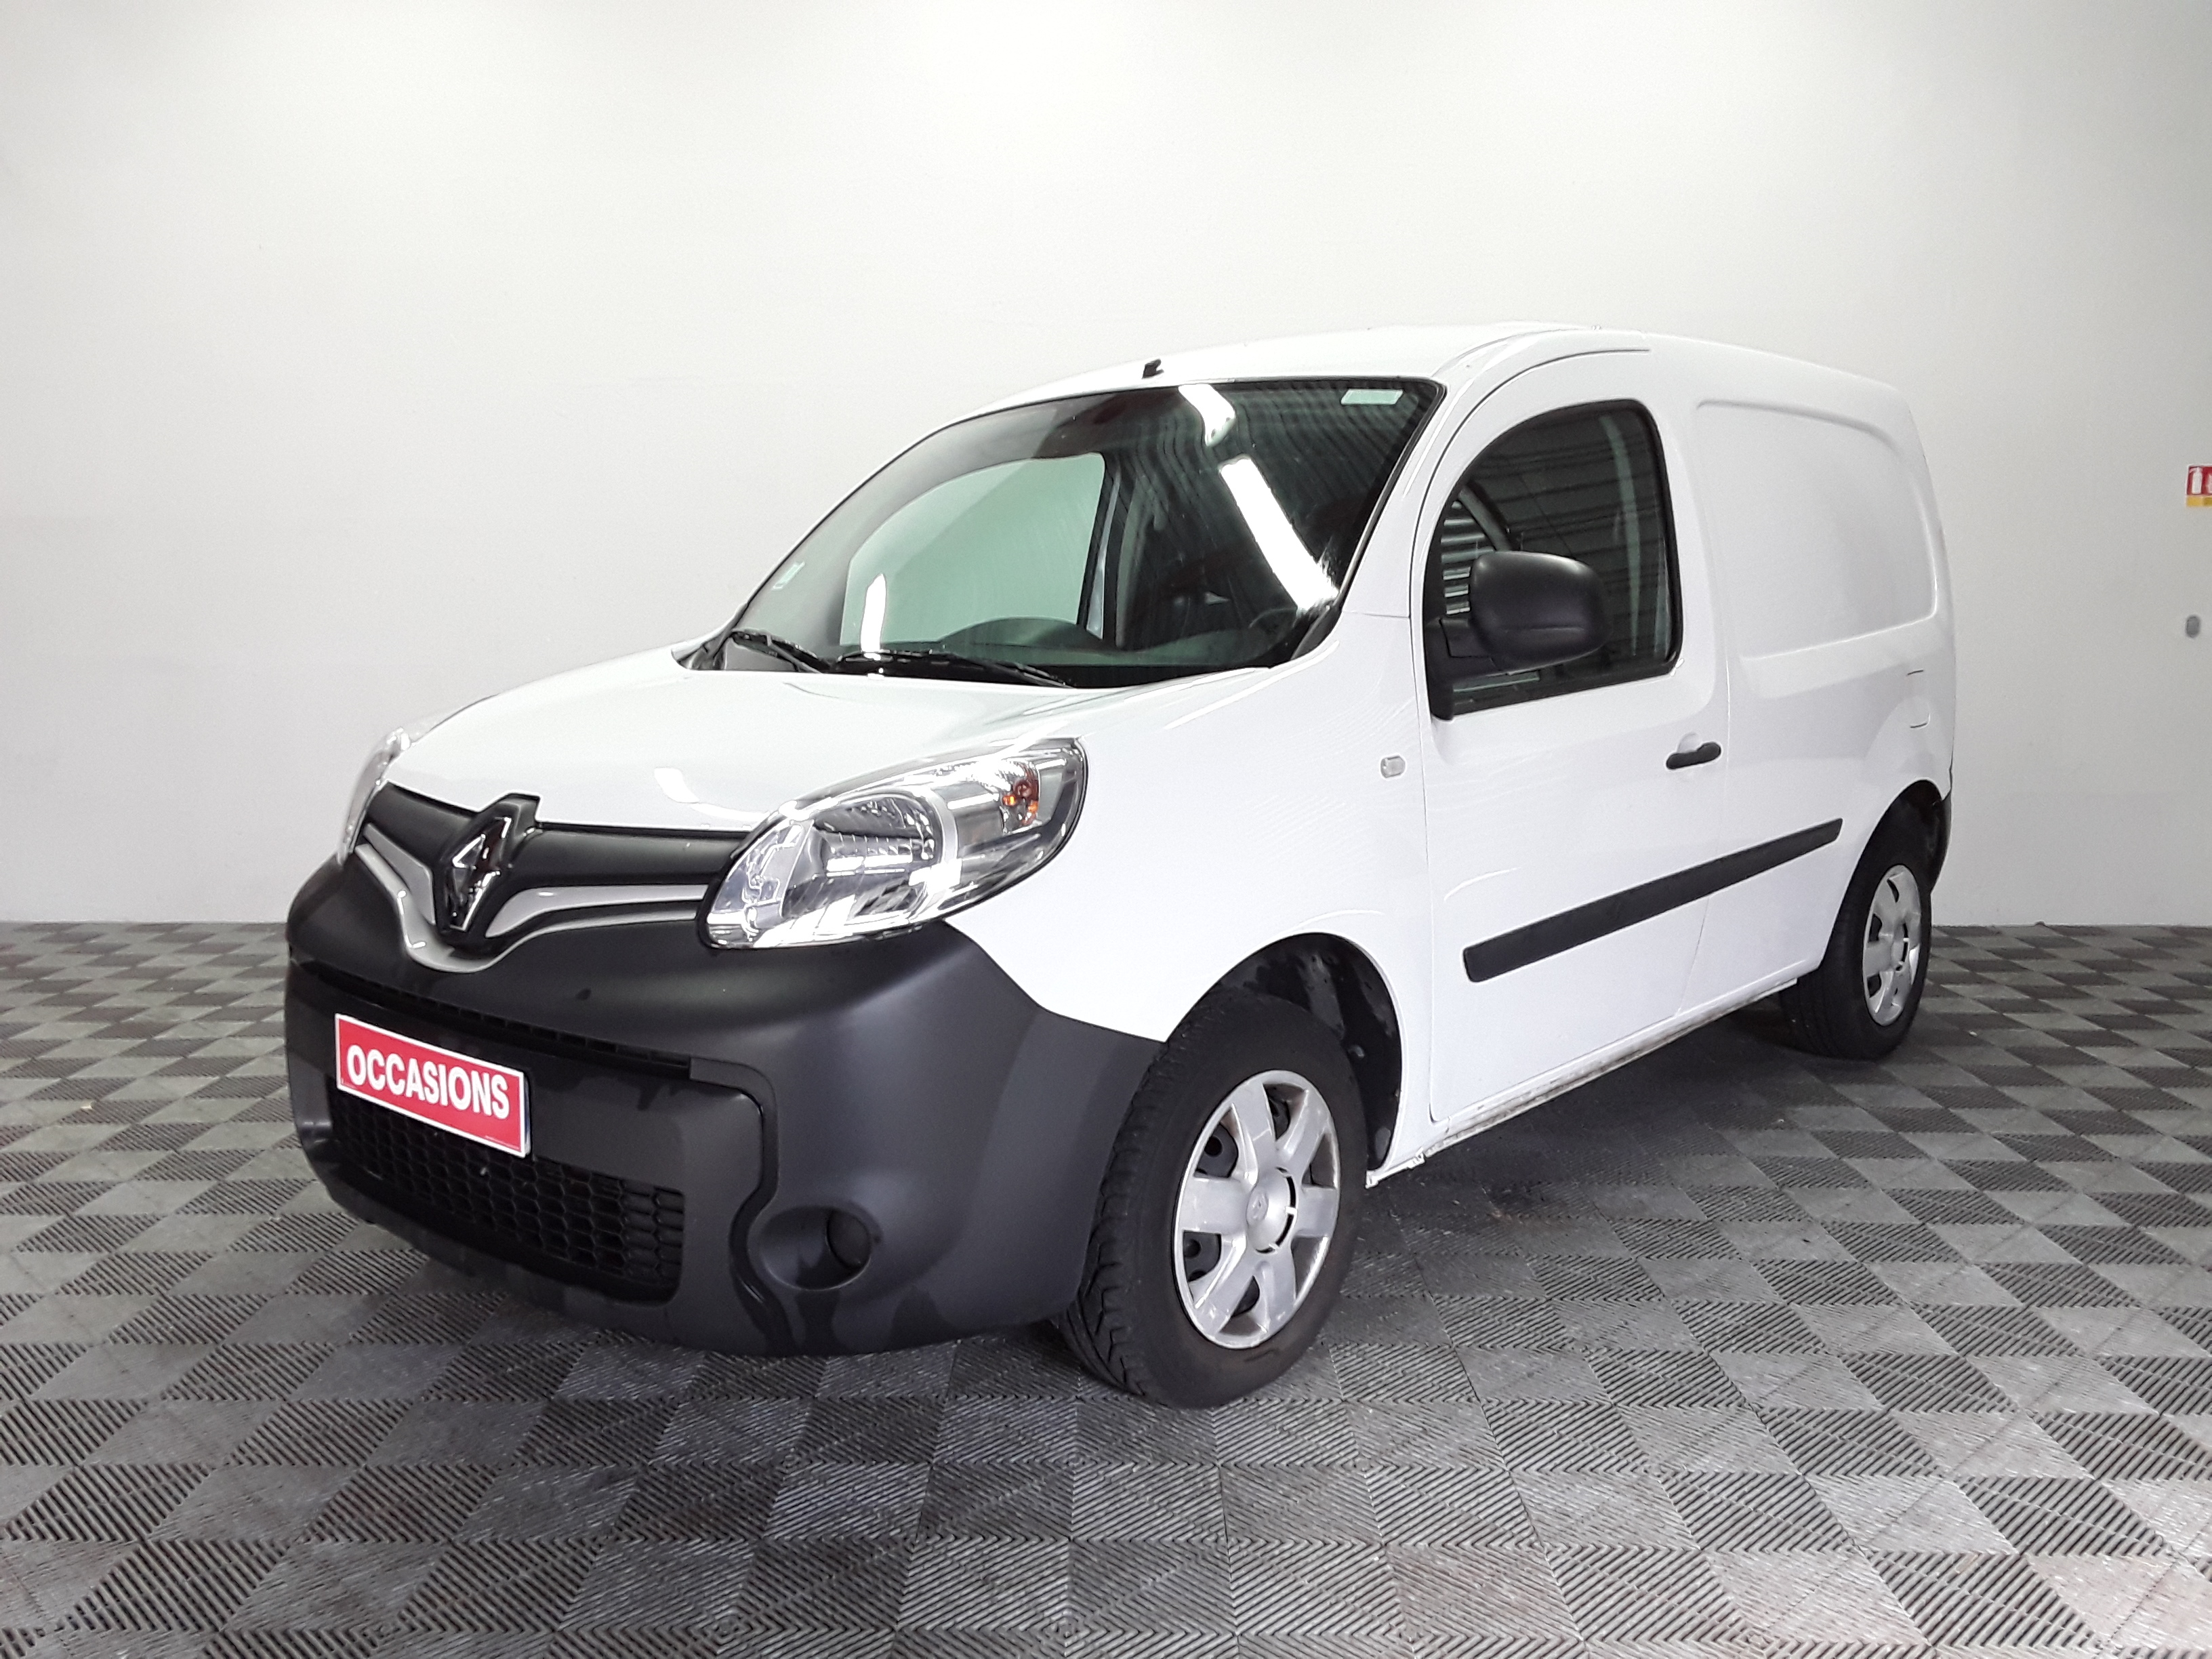 RENAULT KANGOO EXPRESS 2015 à 7400 € - Photo n°1